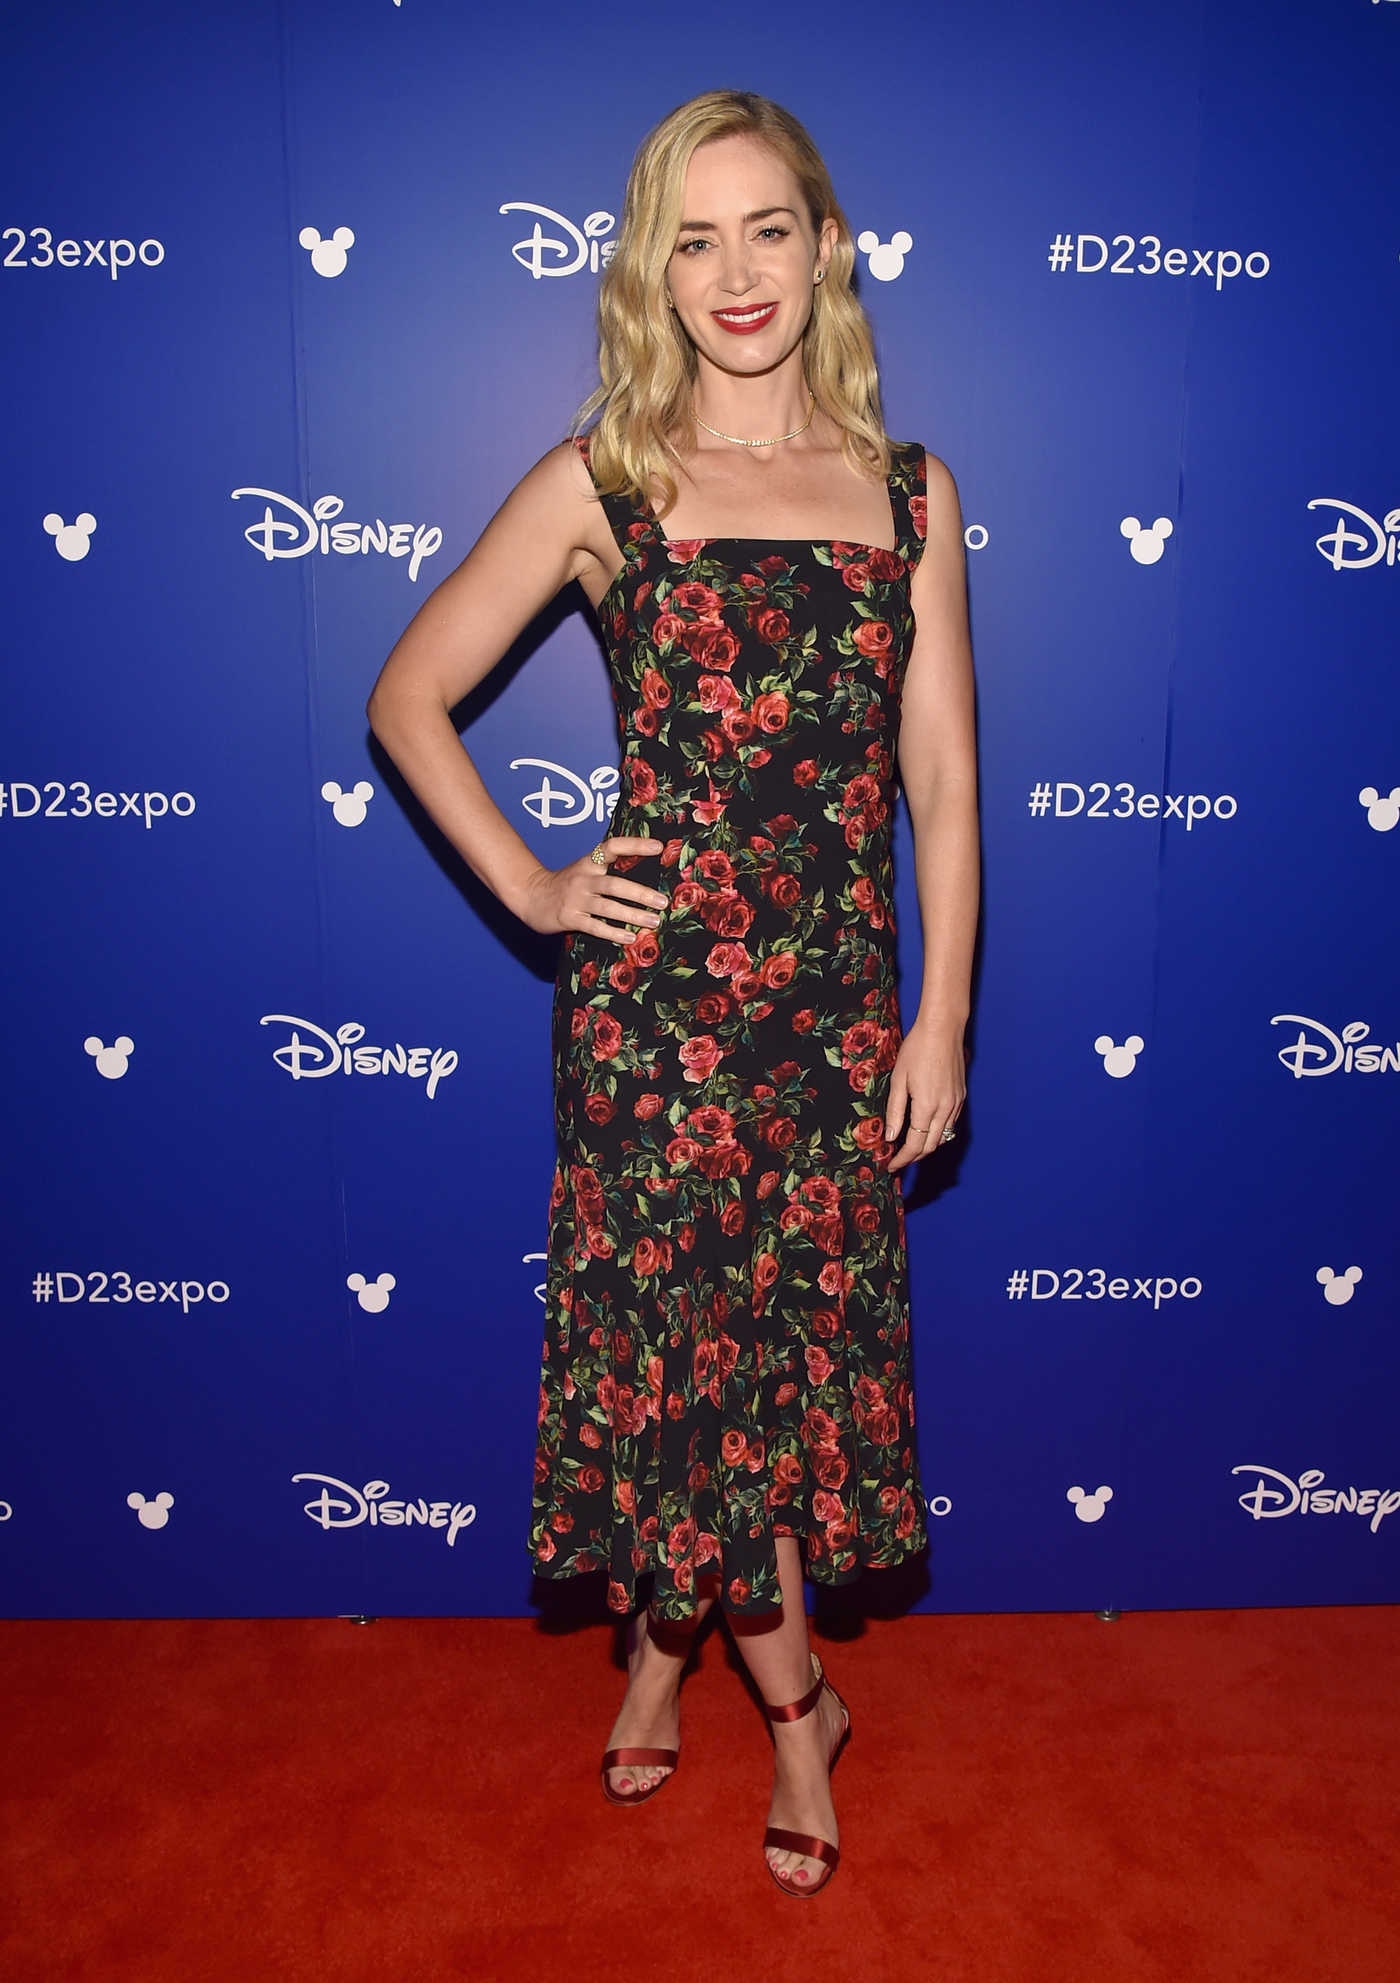 Emily Blunt at the 2017 Disney D23 Expo in Anaheim 07/15/2017